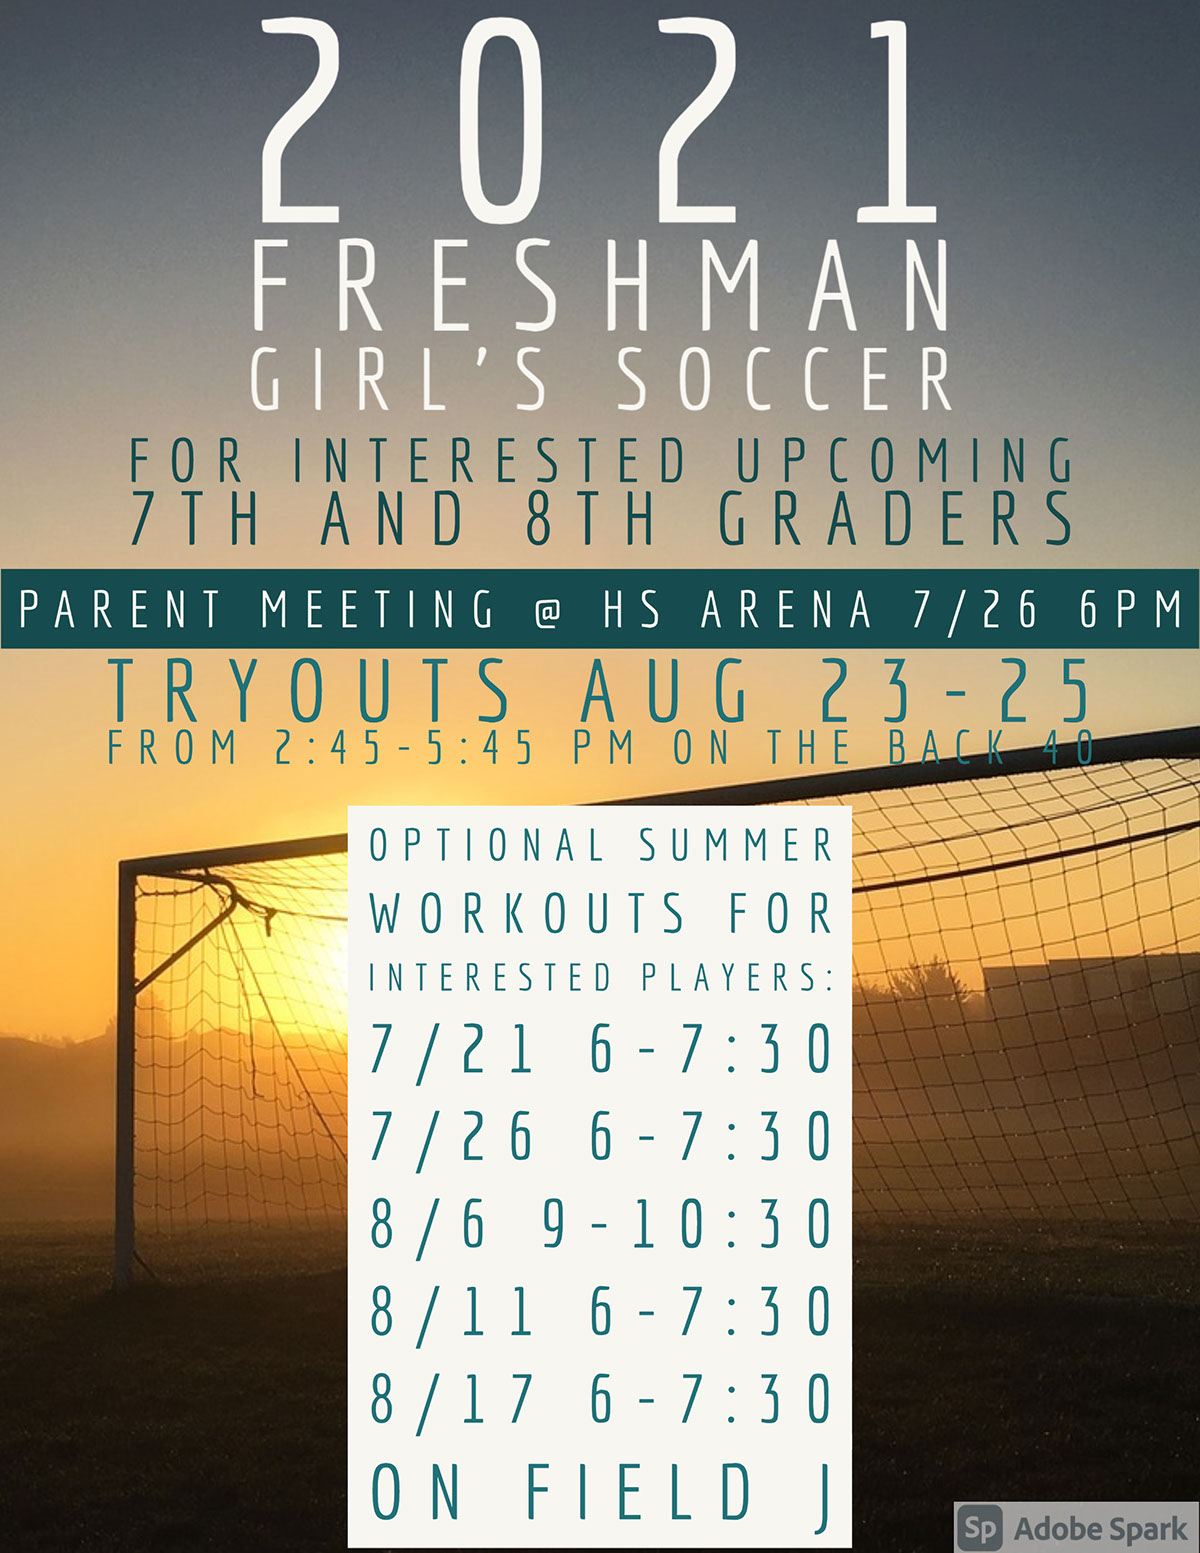 2021 Freshman girl's soccer 2021 Freshman girl's soccer for Interested upcoming 7th and 8th graders Tryouts Aug 23-25 from 2:45-5:45 PM on the back 40 optional summer workouts for interested players: 7/21 6-7:30 7/26 6-7:30 8/6 9-10:30 8/11 6-7:30 8/17 6-7:30 On Field J Parent meeting @ HS Arena 7/26 6PM